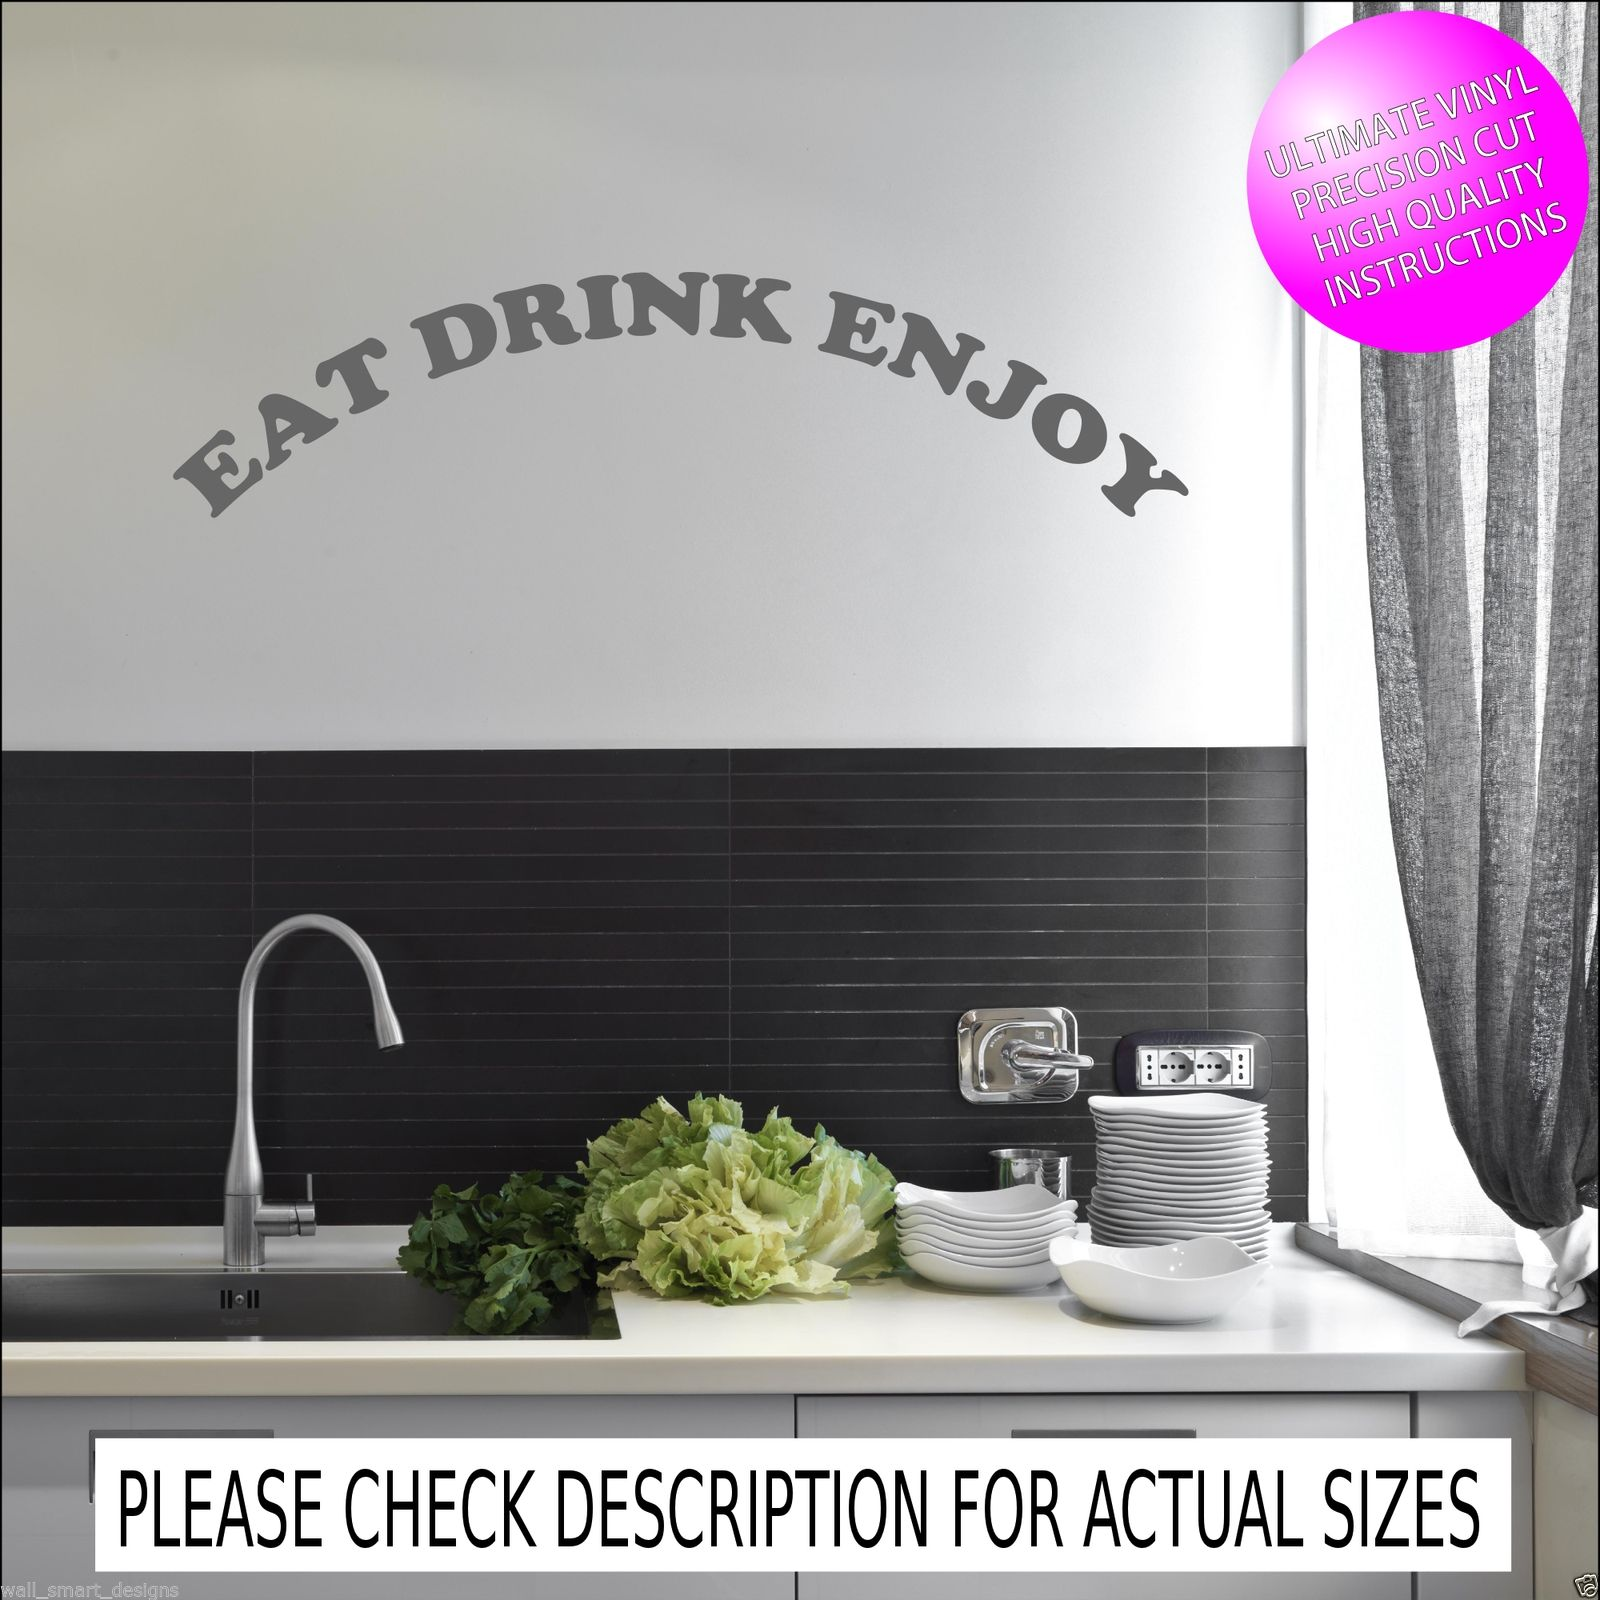 Eat drink enjoy kitchen wall quote sticker mural decal transfer ...